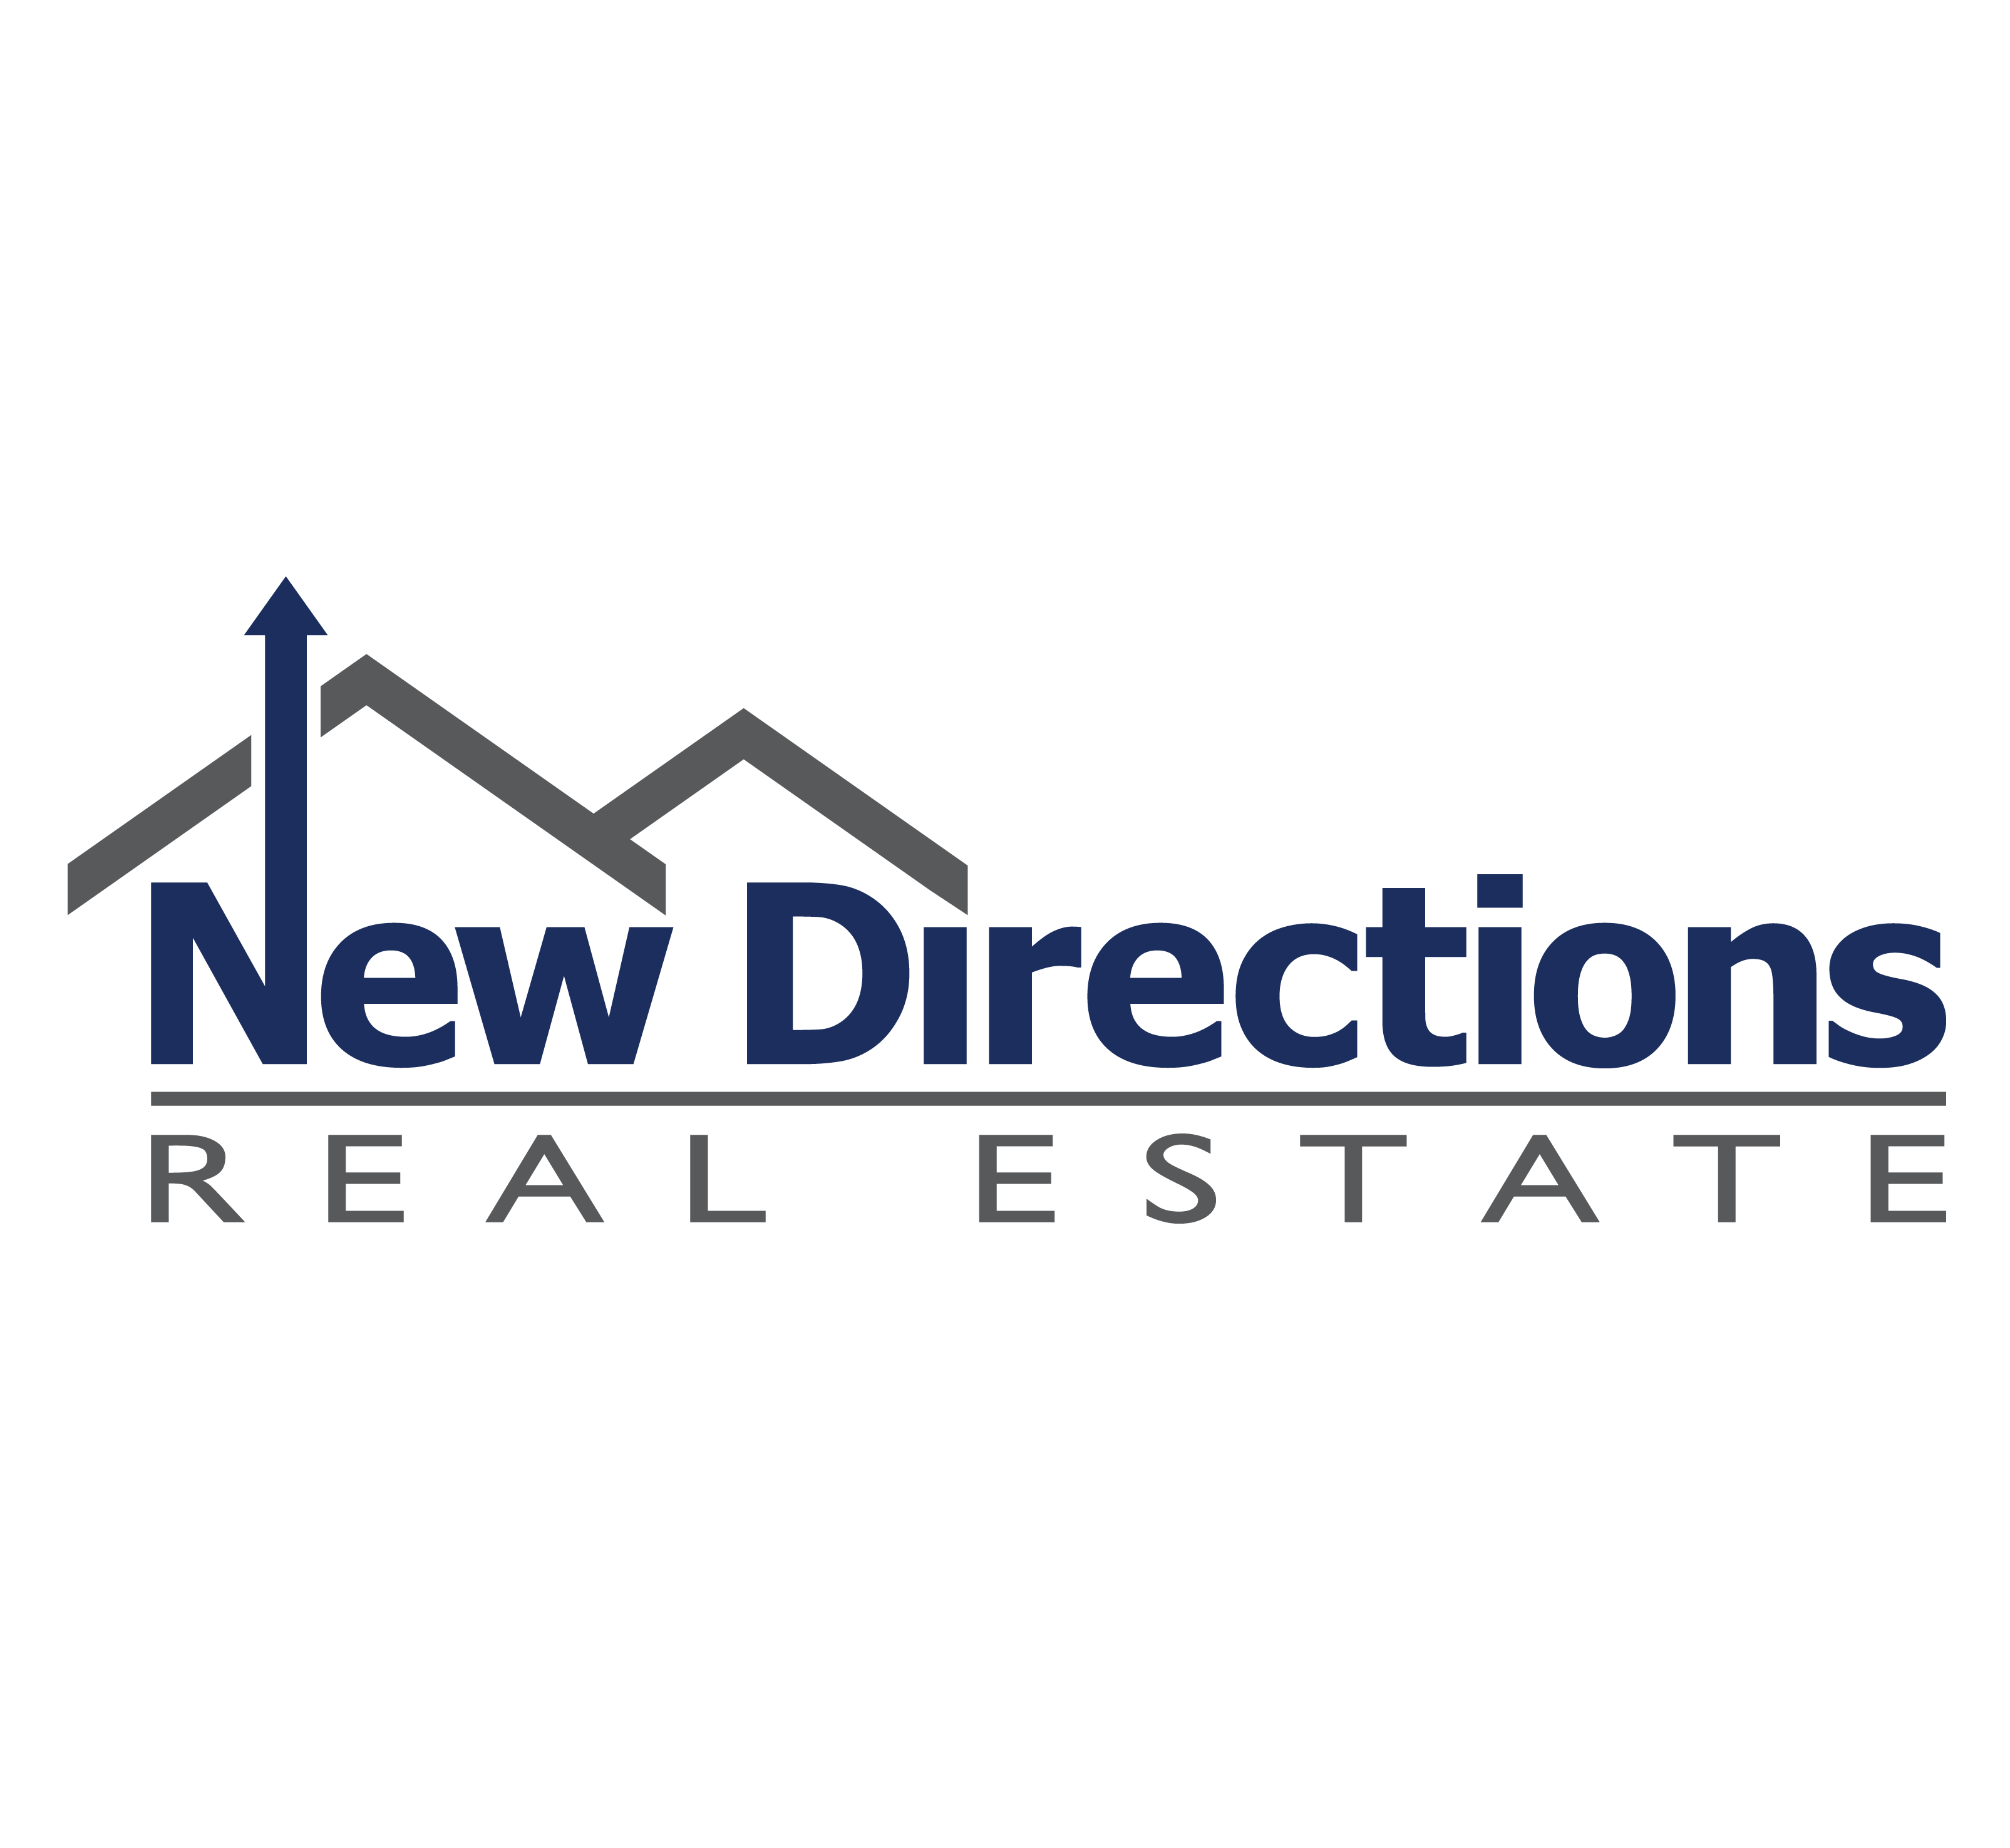 New Directions Real Estate